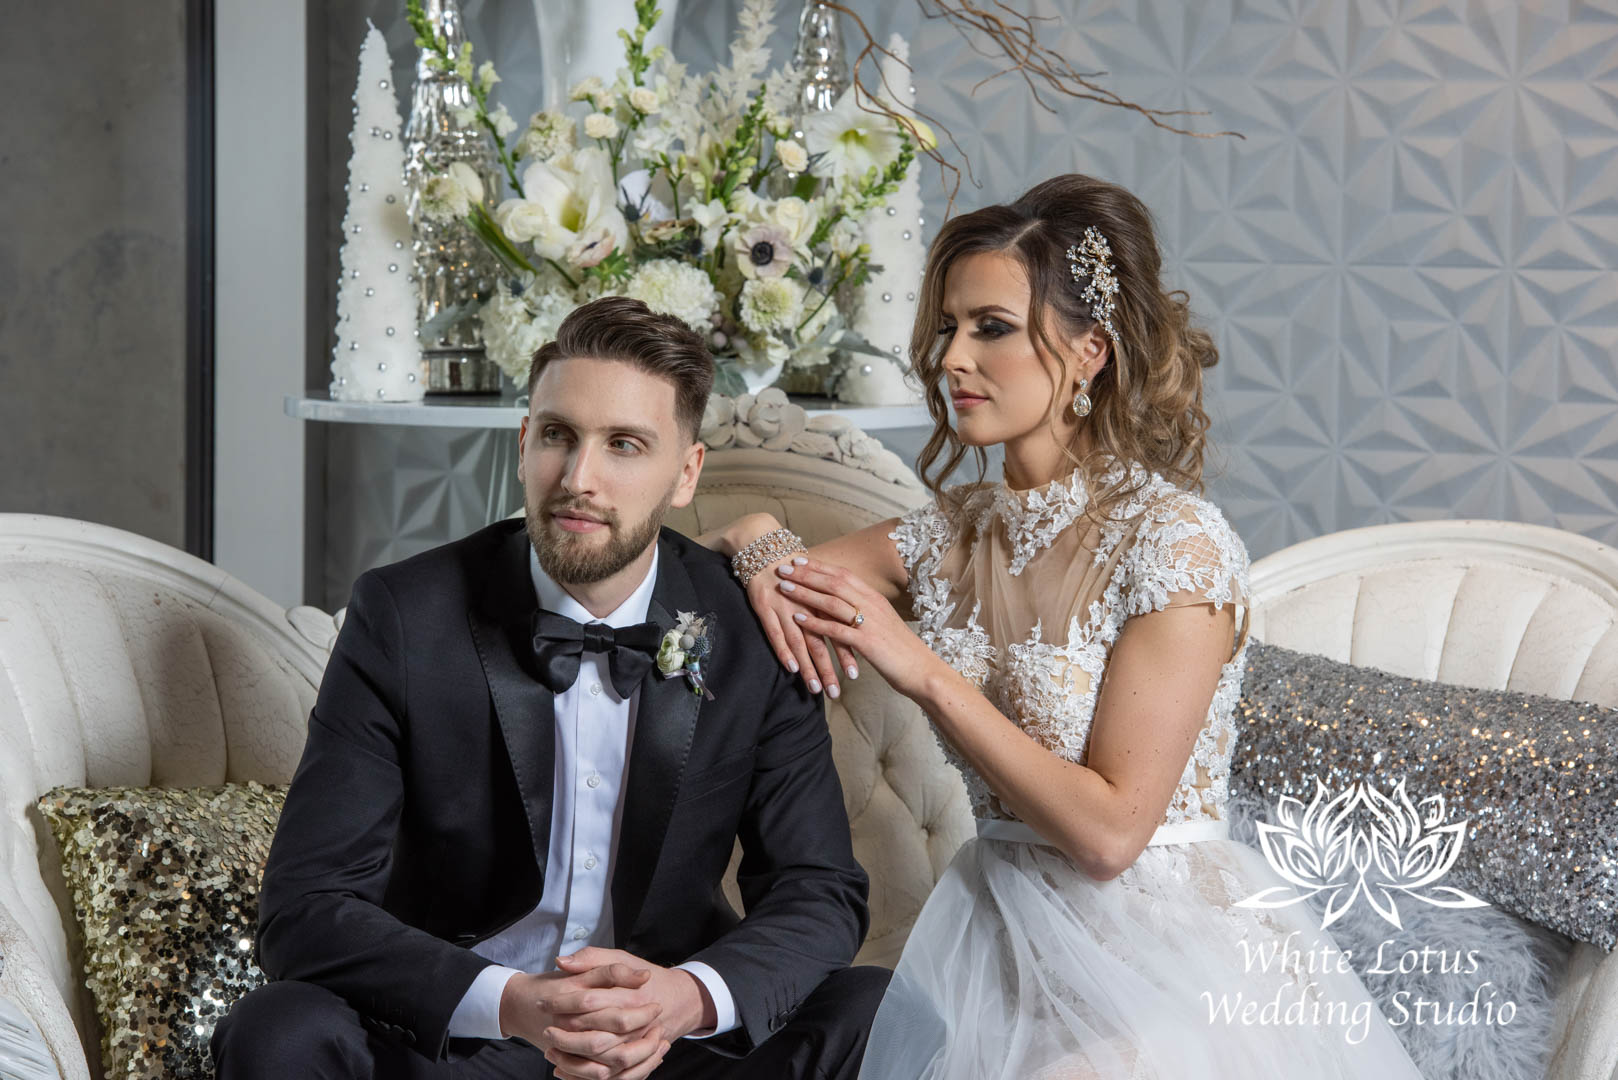 074- GLAM WINTERLUXE WEDDING INSPIRATION